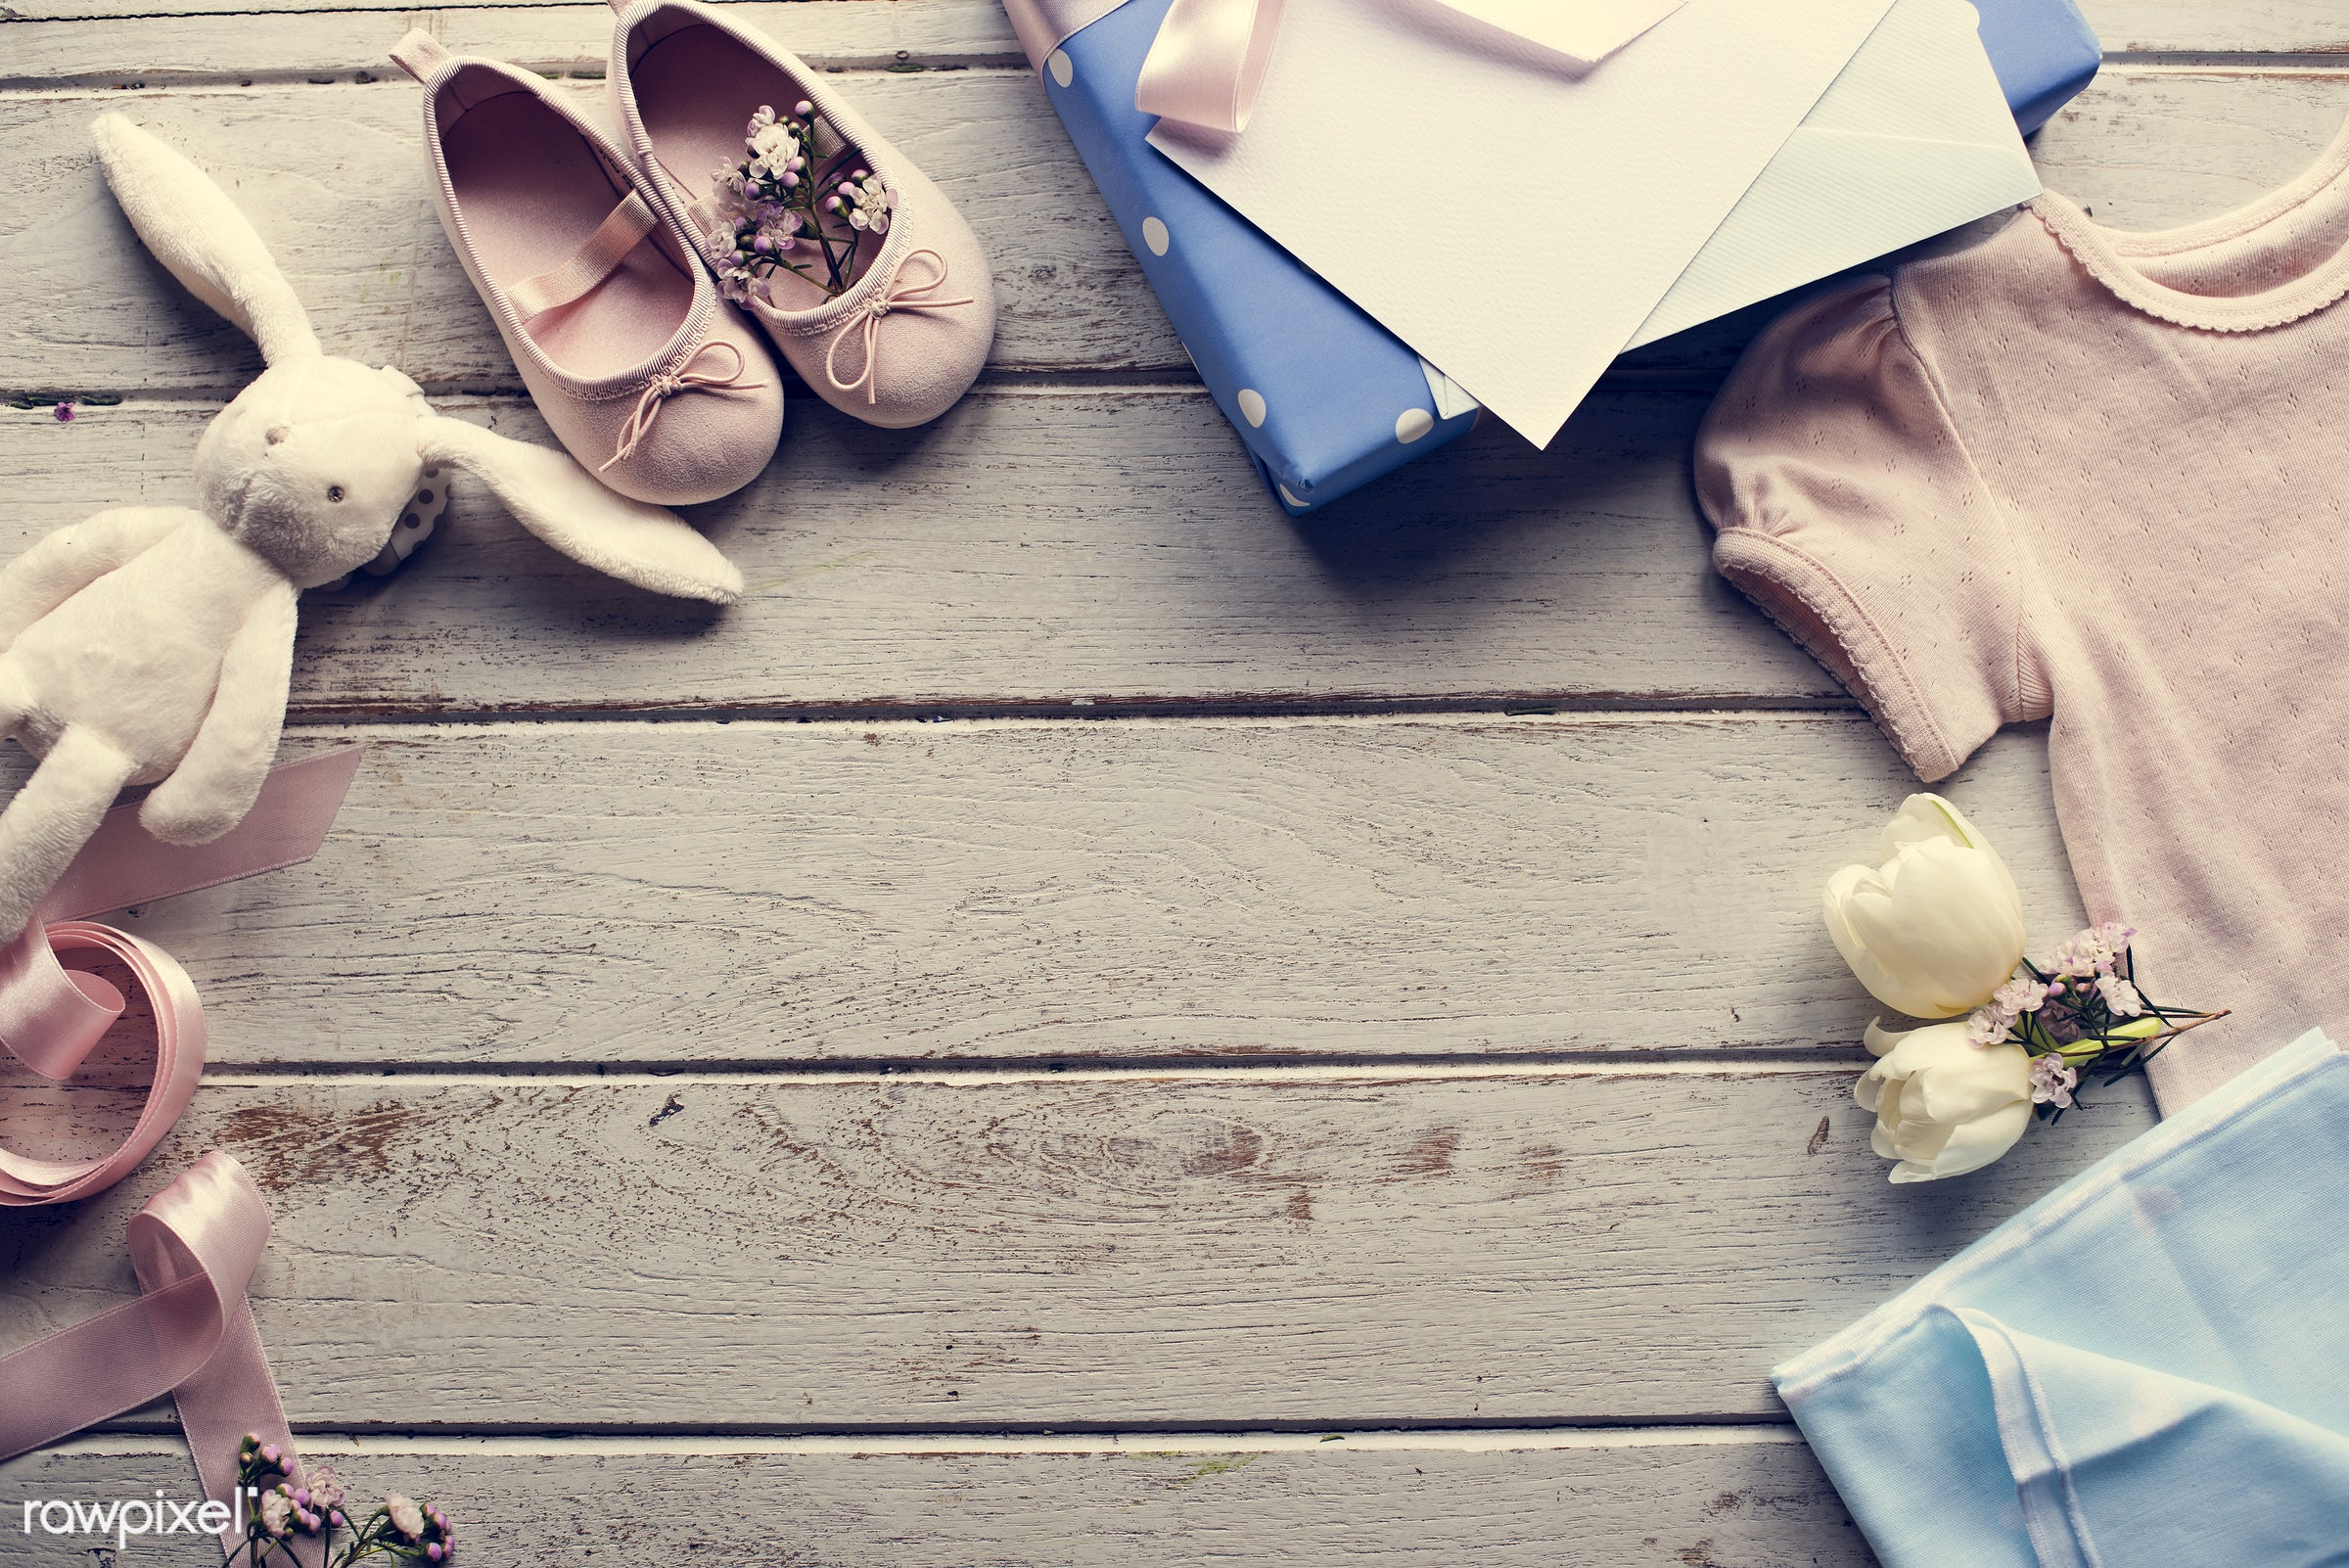 rabbit, concept, fashion, gift, decorative, footwear, collection, object, decor, ribbon, shoe, flower, shoes, doll,...